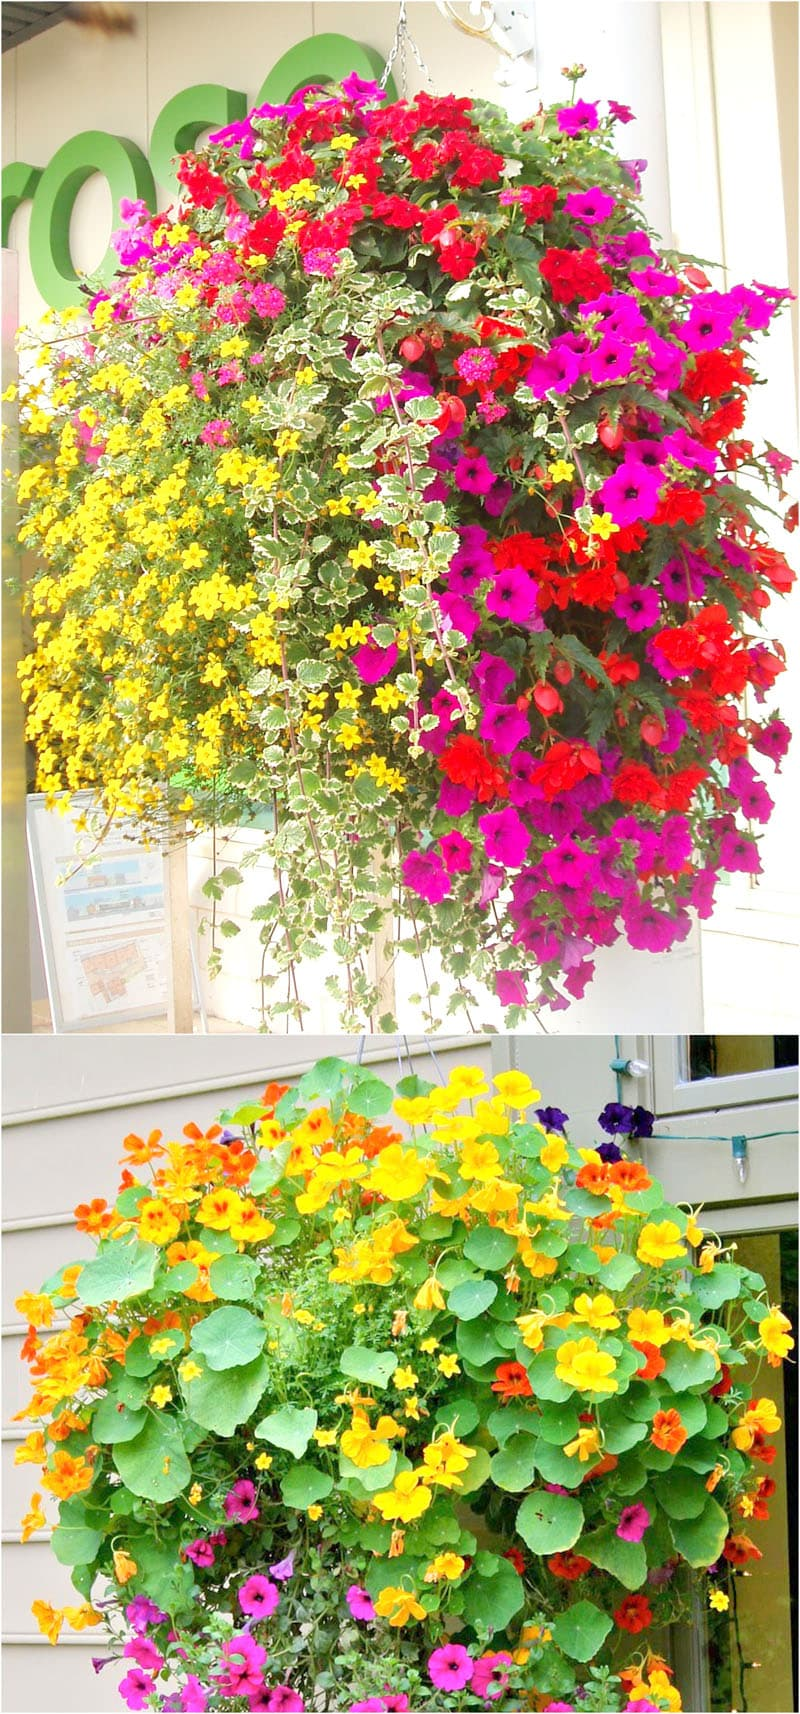 Best plants and flowers for hanging baskets in full sun or half day sun.